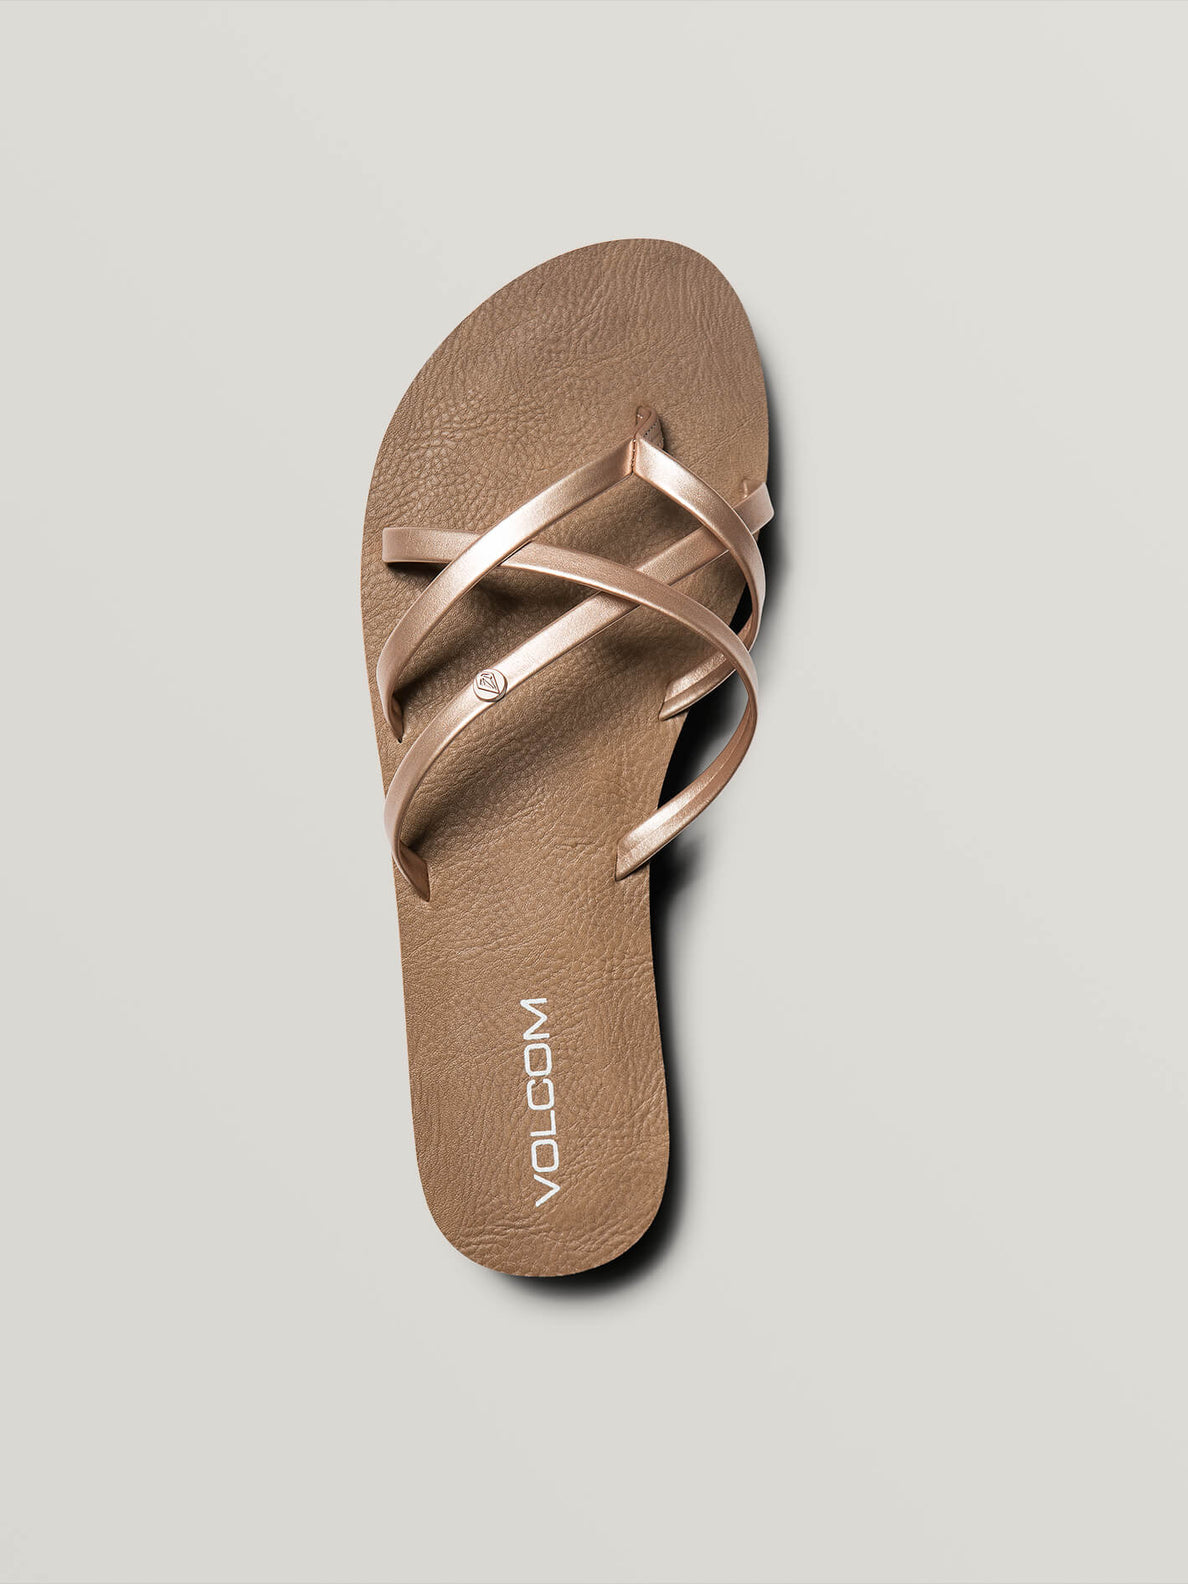 New School Sandals In Rose Gold, Alternate View